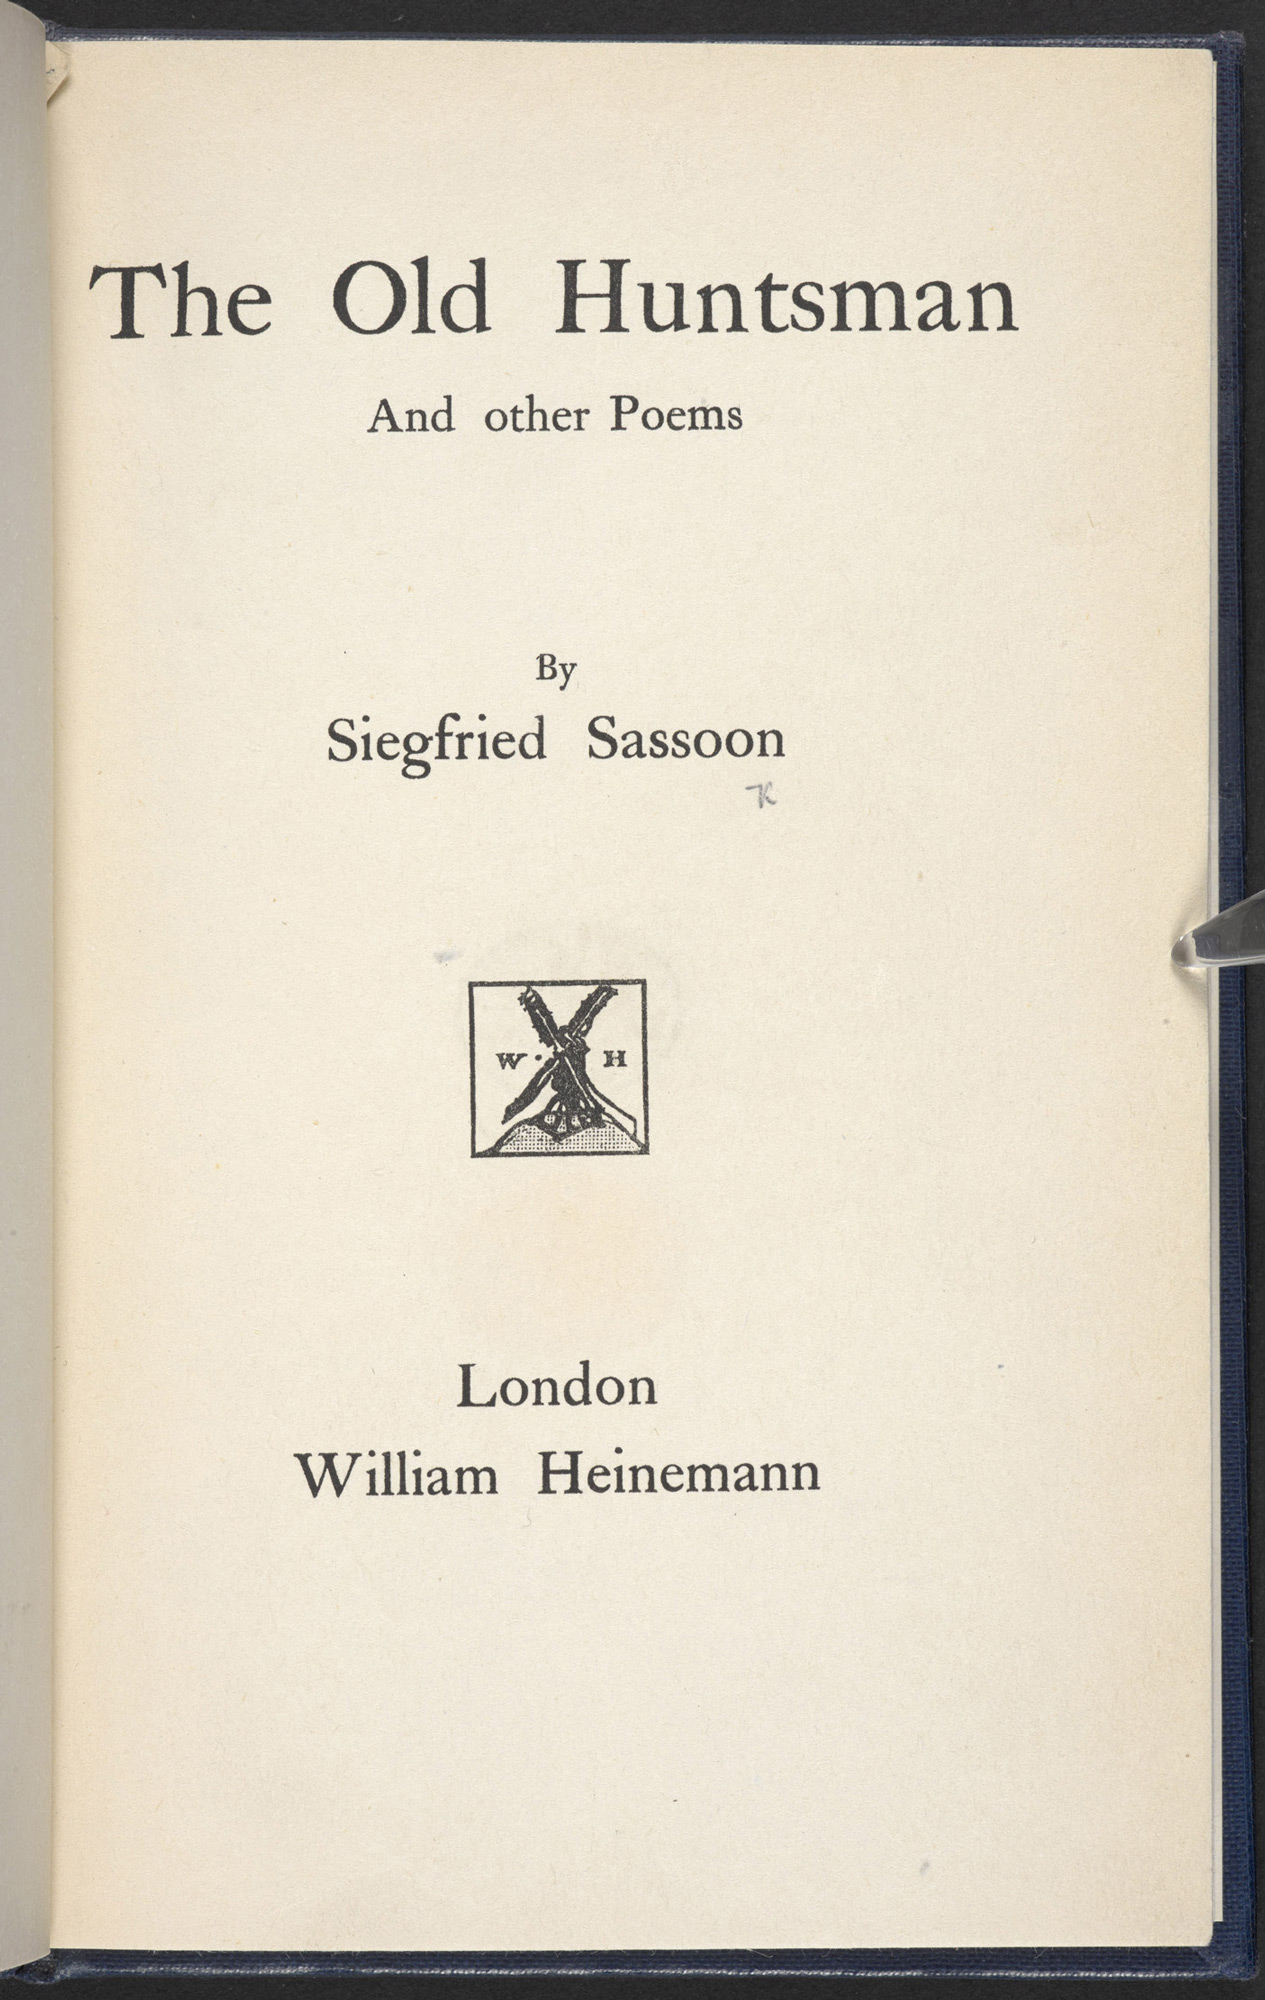 The Old Huntsman by Siegfried Sassoon